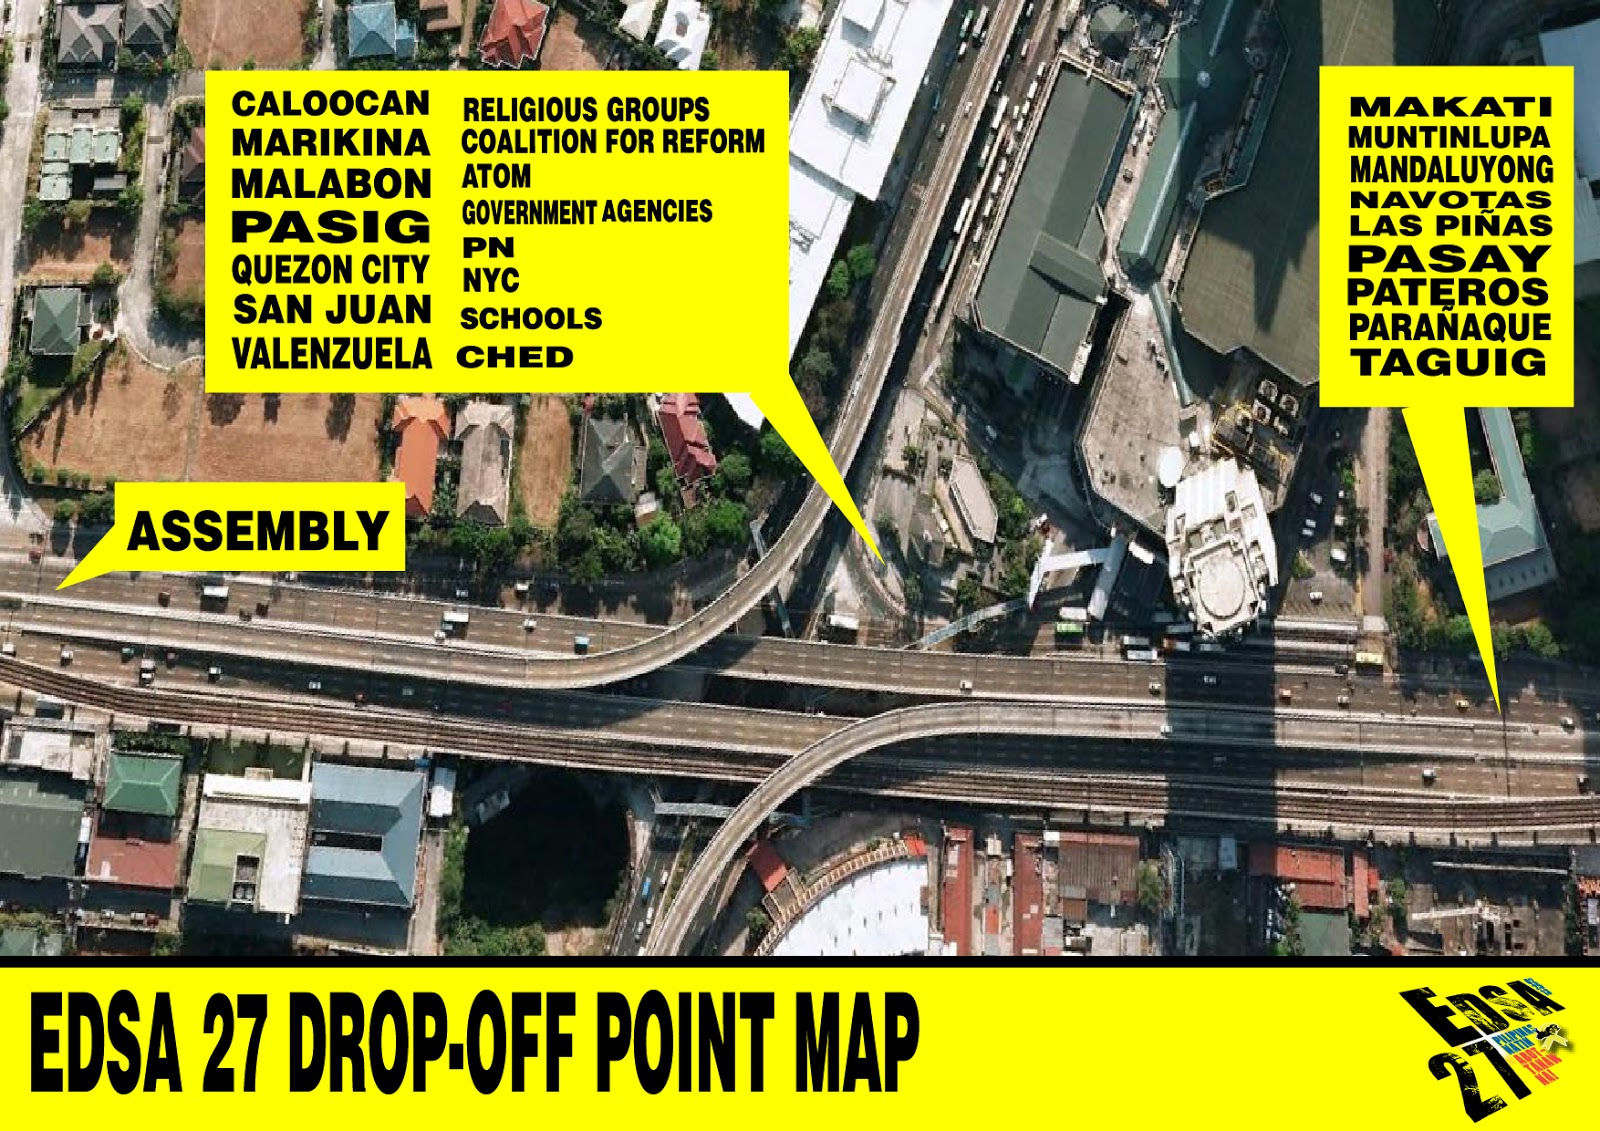 implications of edsa 1 and 2 Commuting routes: from caloocan: route 1: bus from edsa, ride a bus to mia/naia route 2: lrt1-bus take the lrt1 to edsa station exit the station turn right at taft avenue, and walk about 1 block, past metropoint mall, until you get to edsa.